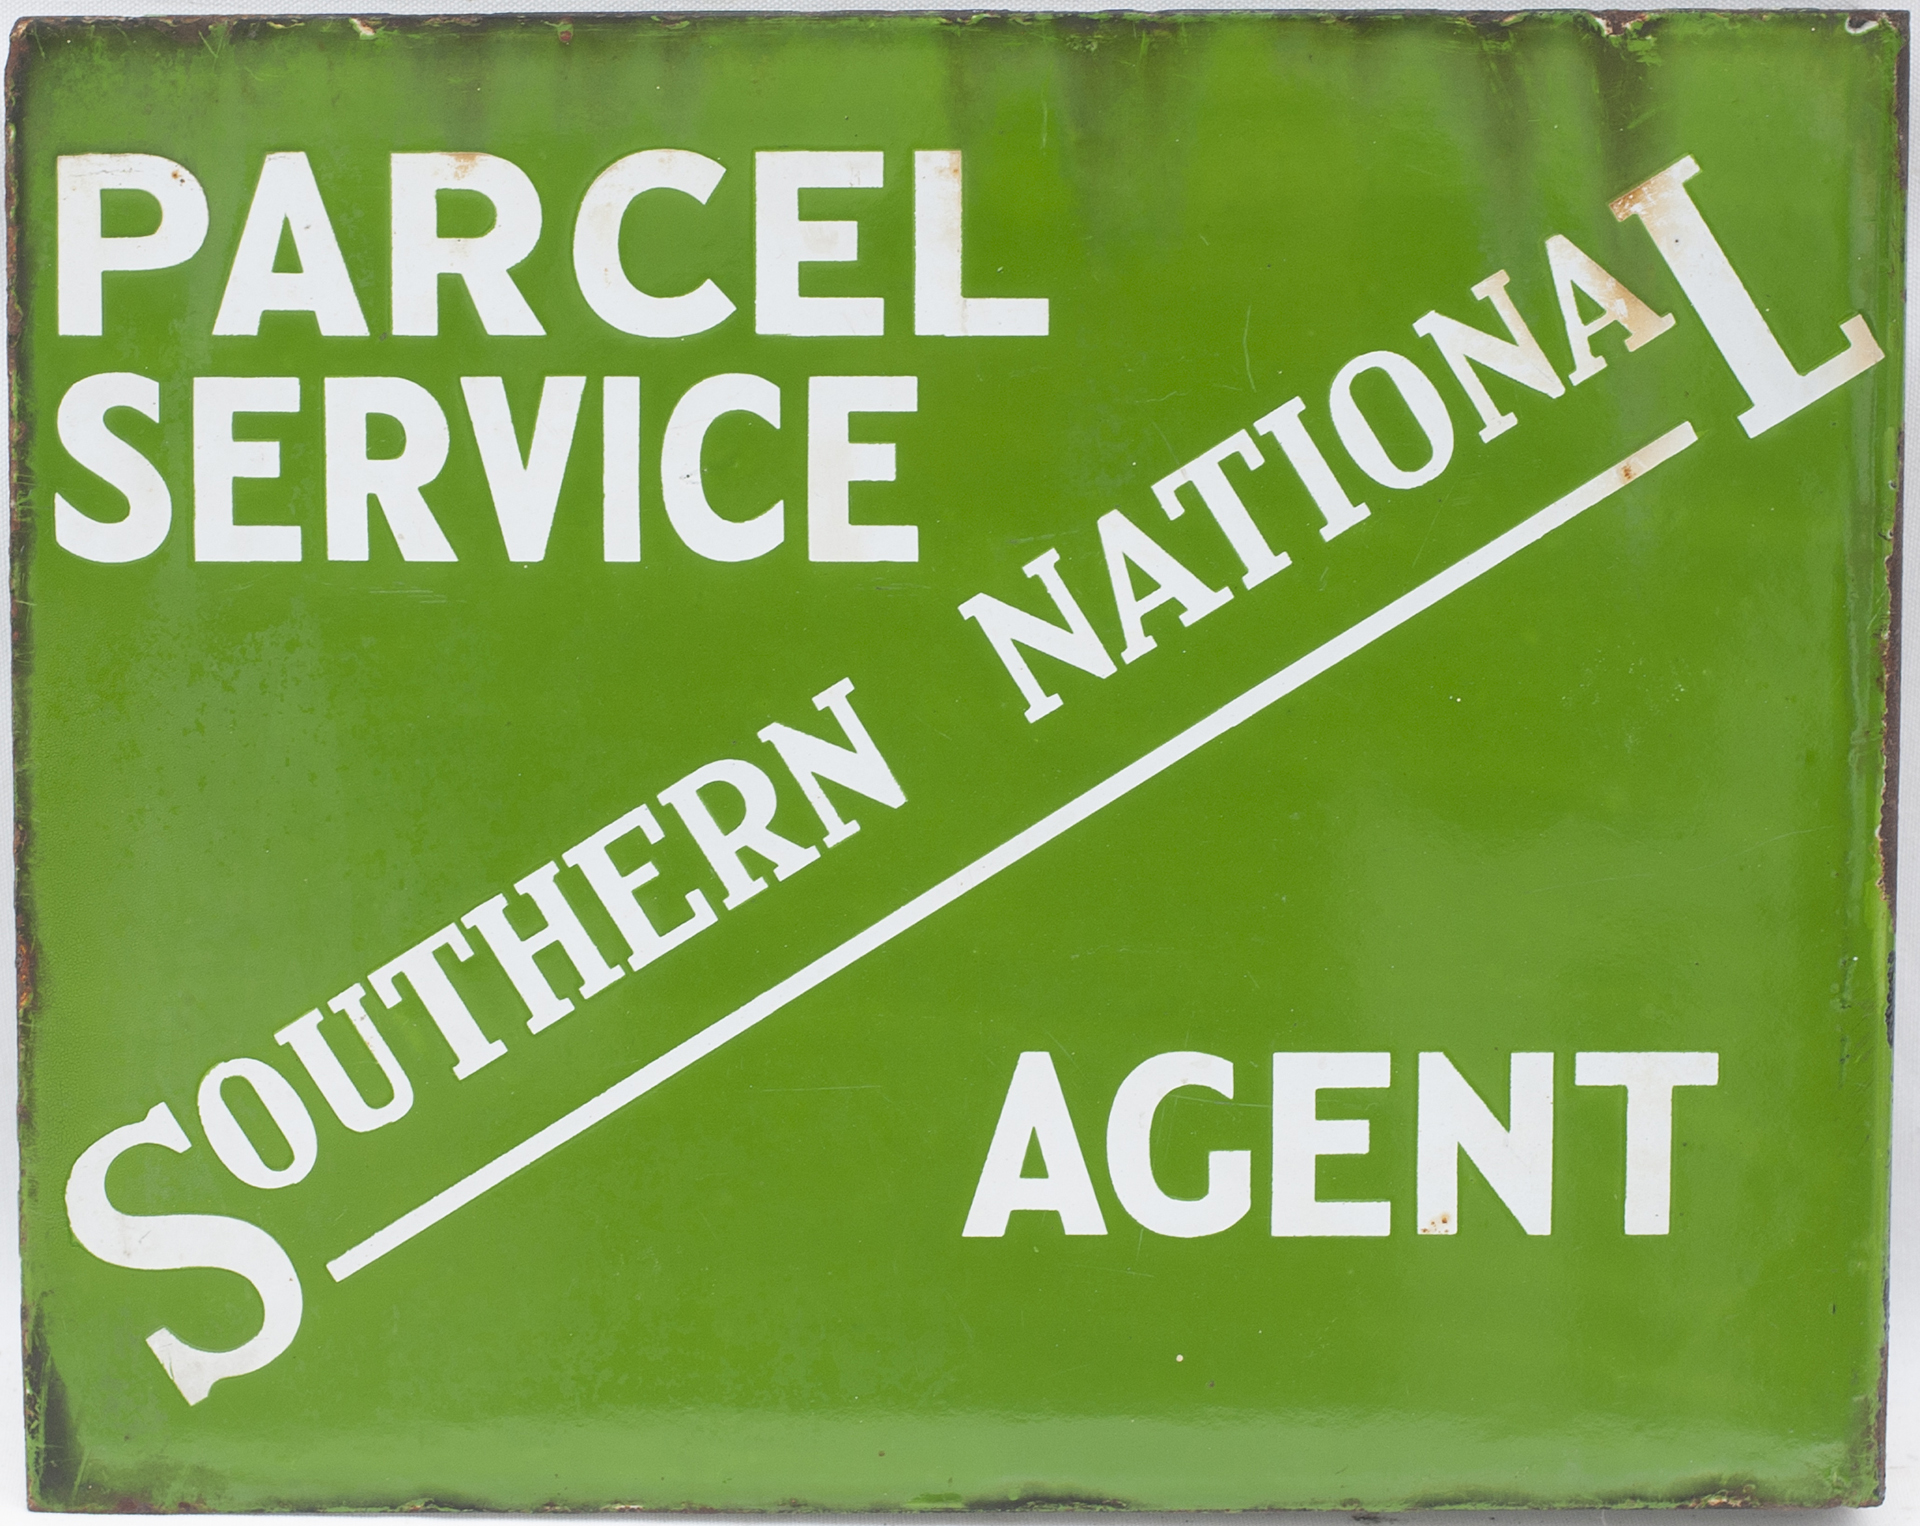 Bus motoring enamel sign SOUTHERN NATIONAL PARCEL SERVICE AGENT. Double sided with wall mounting - Image 2 of 2